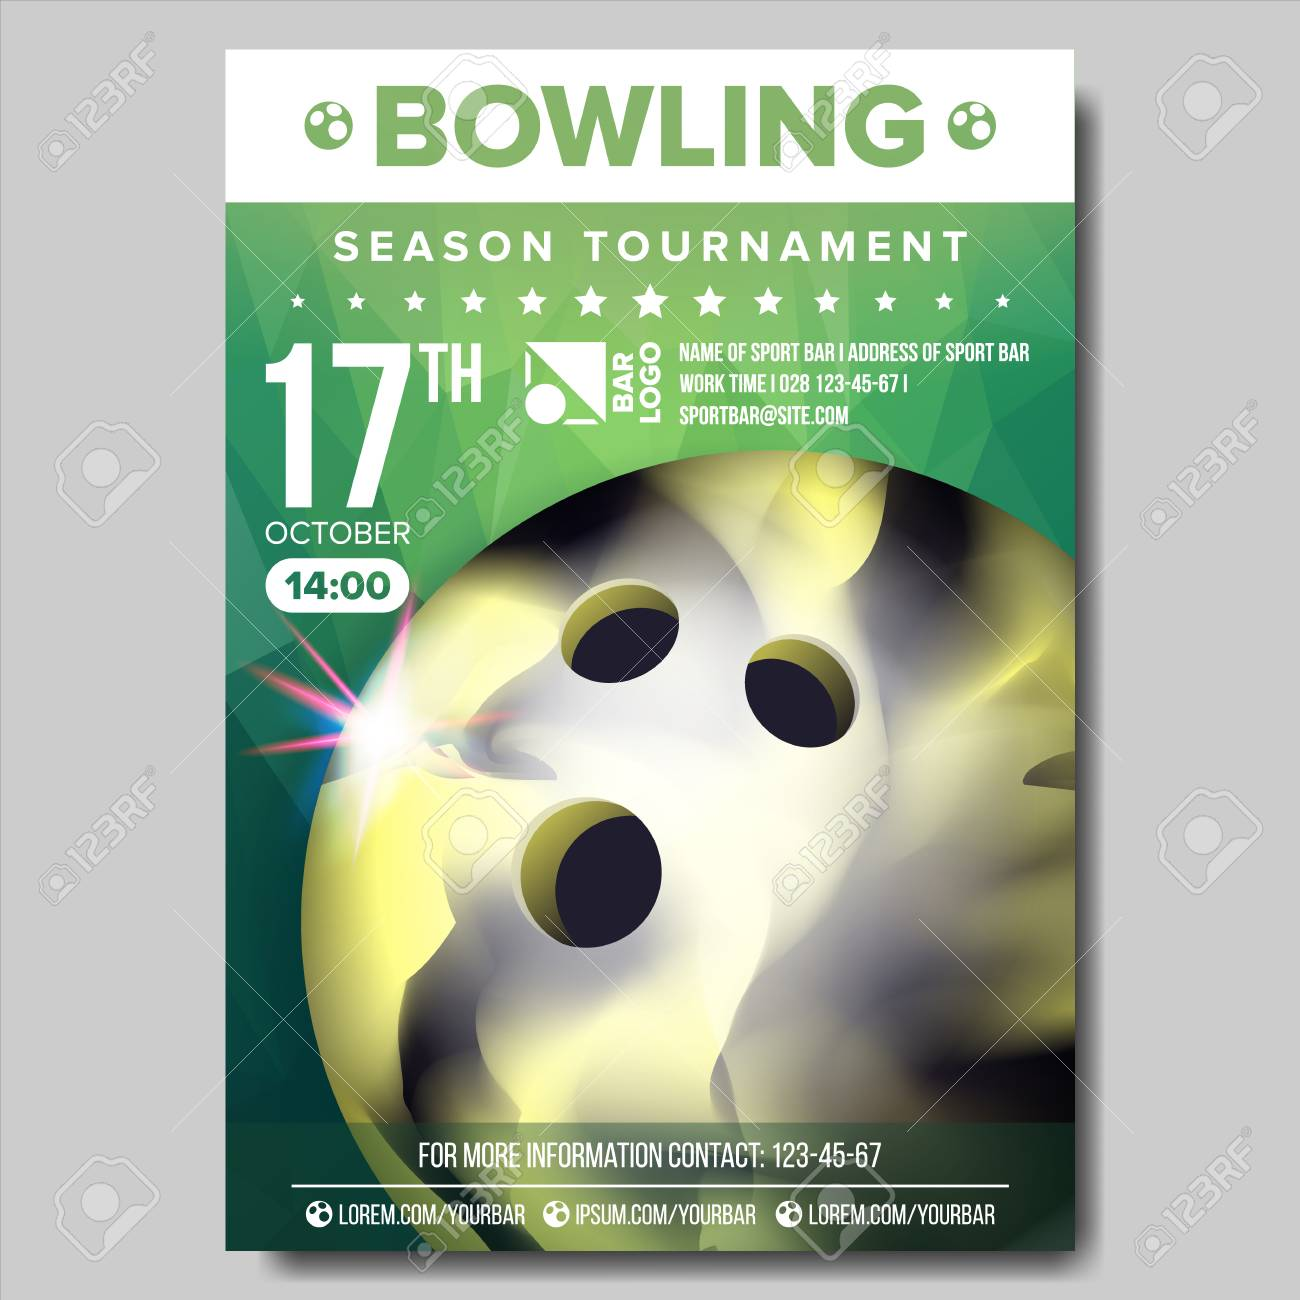 bowling clipart.html